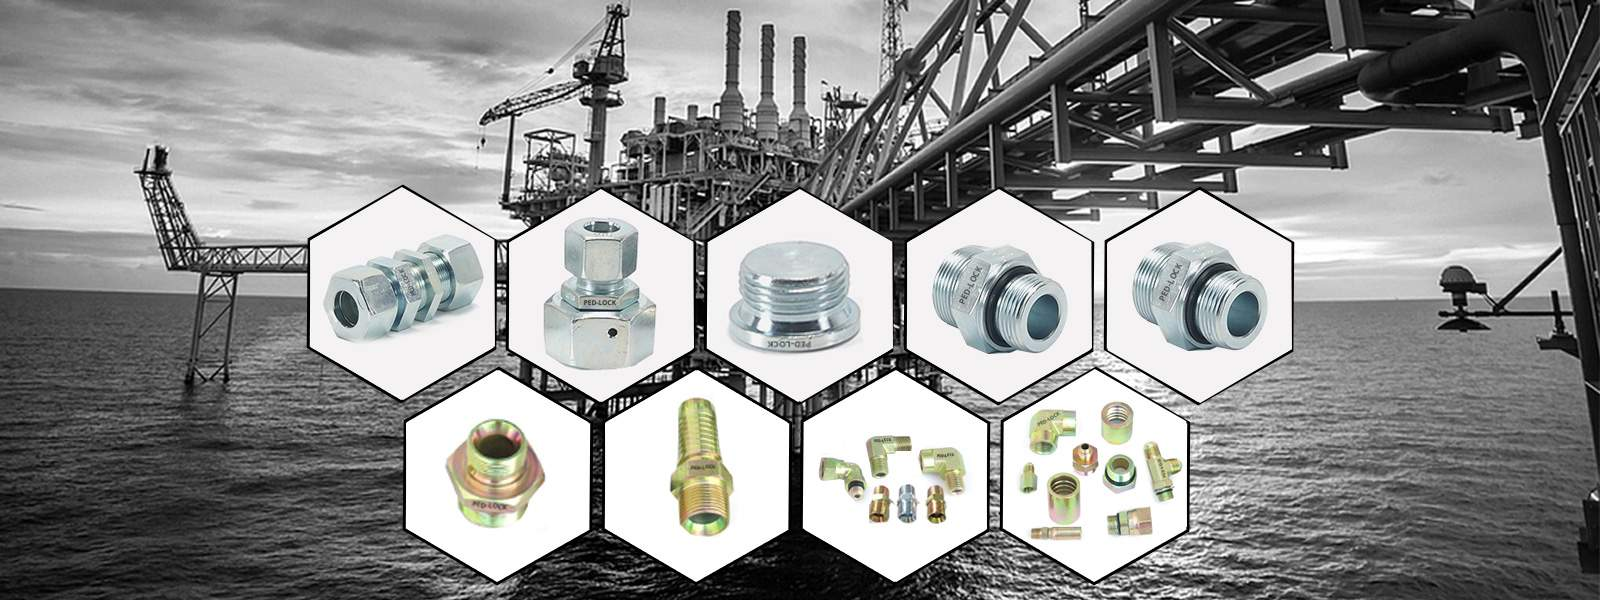 Best hydraulic pipe fitting manufacturers, supplier, exporter in kandla, India